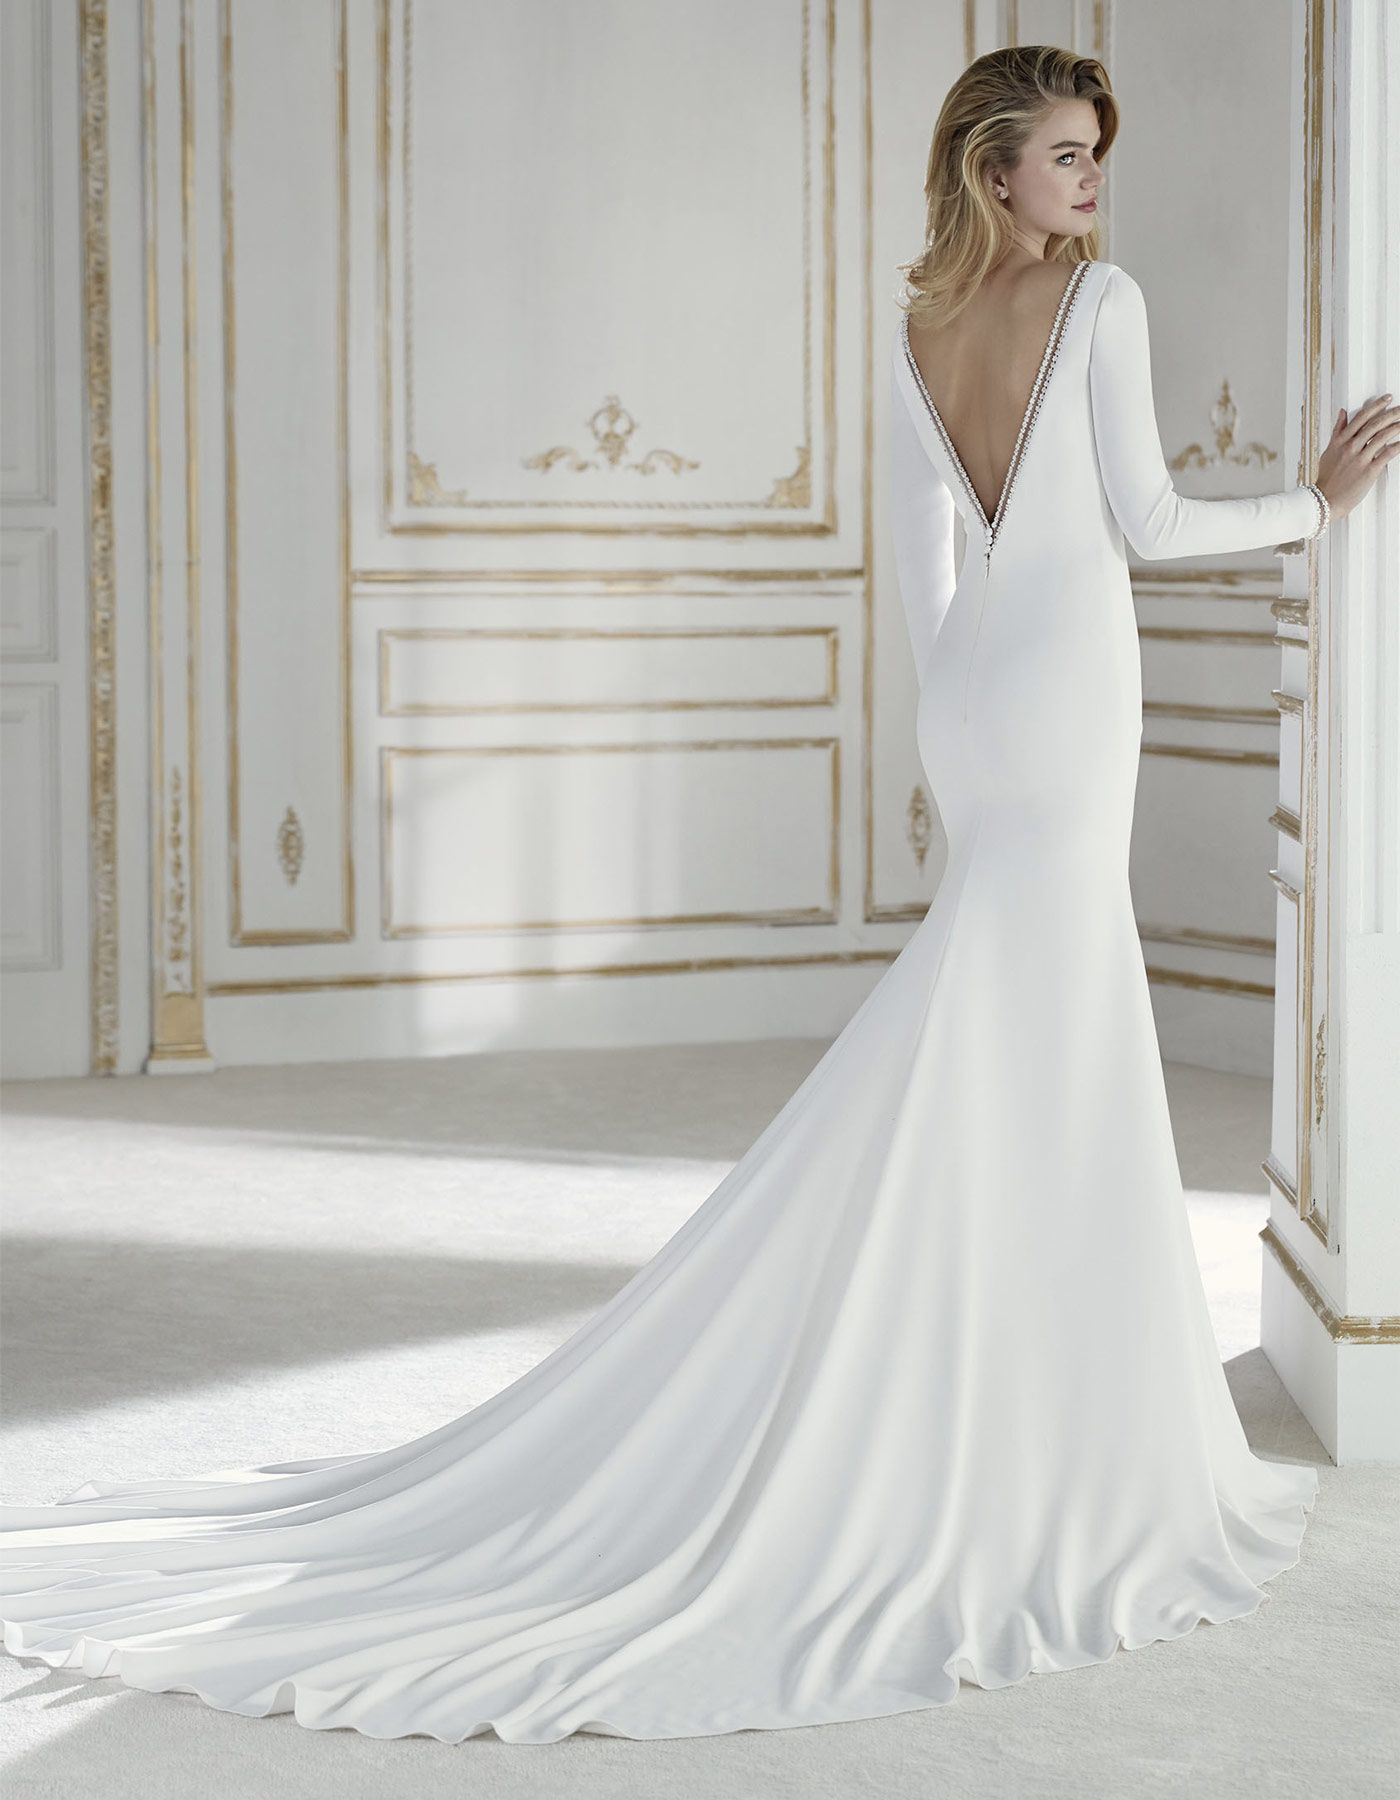 Palas By La Sposa This Dress Demonstrates That Simplicity Is